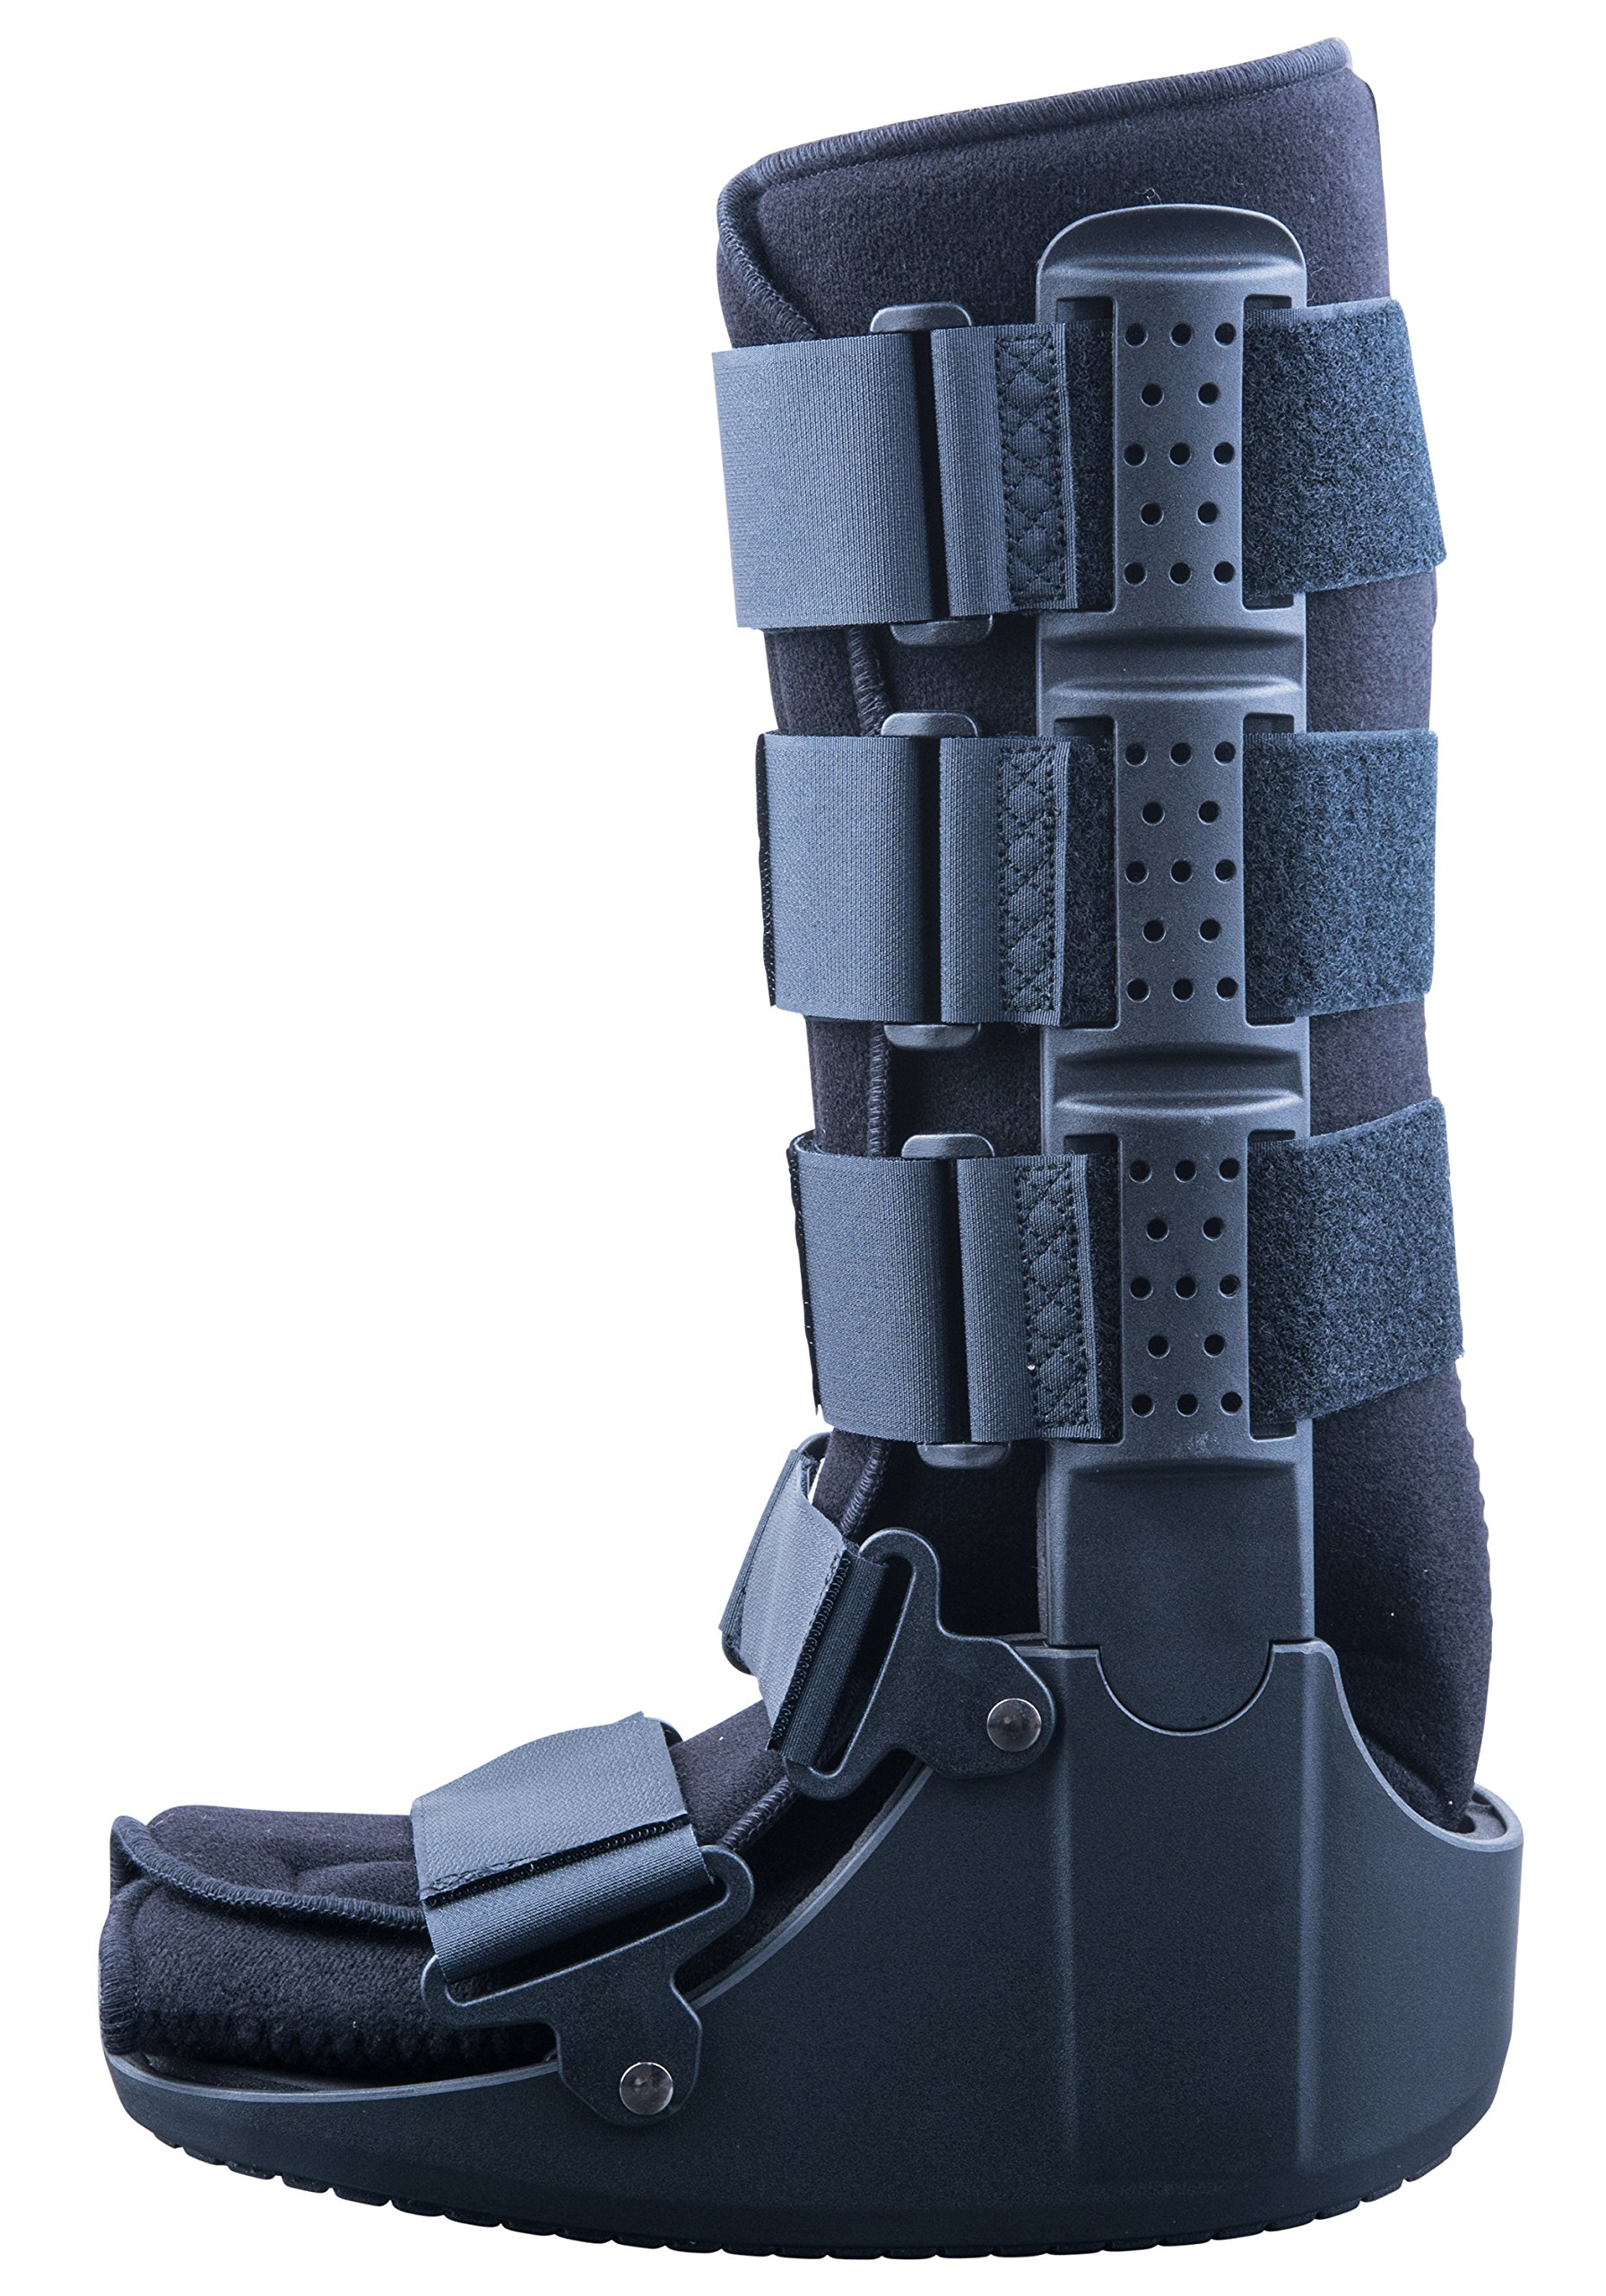 Mars Wellness Premium Polymer Tall Cam Walker Fracture Ankle/Foot Stabilizer Boot - S by MARS WELLNESS